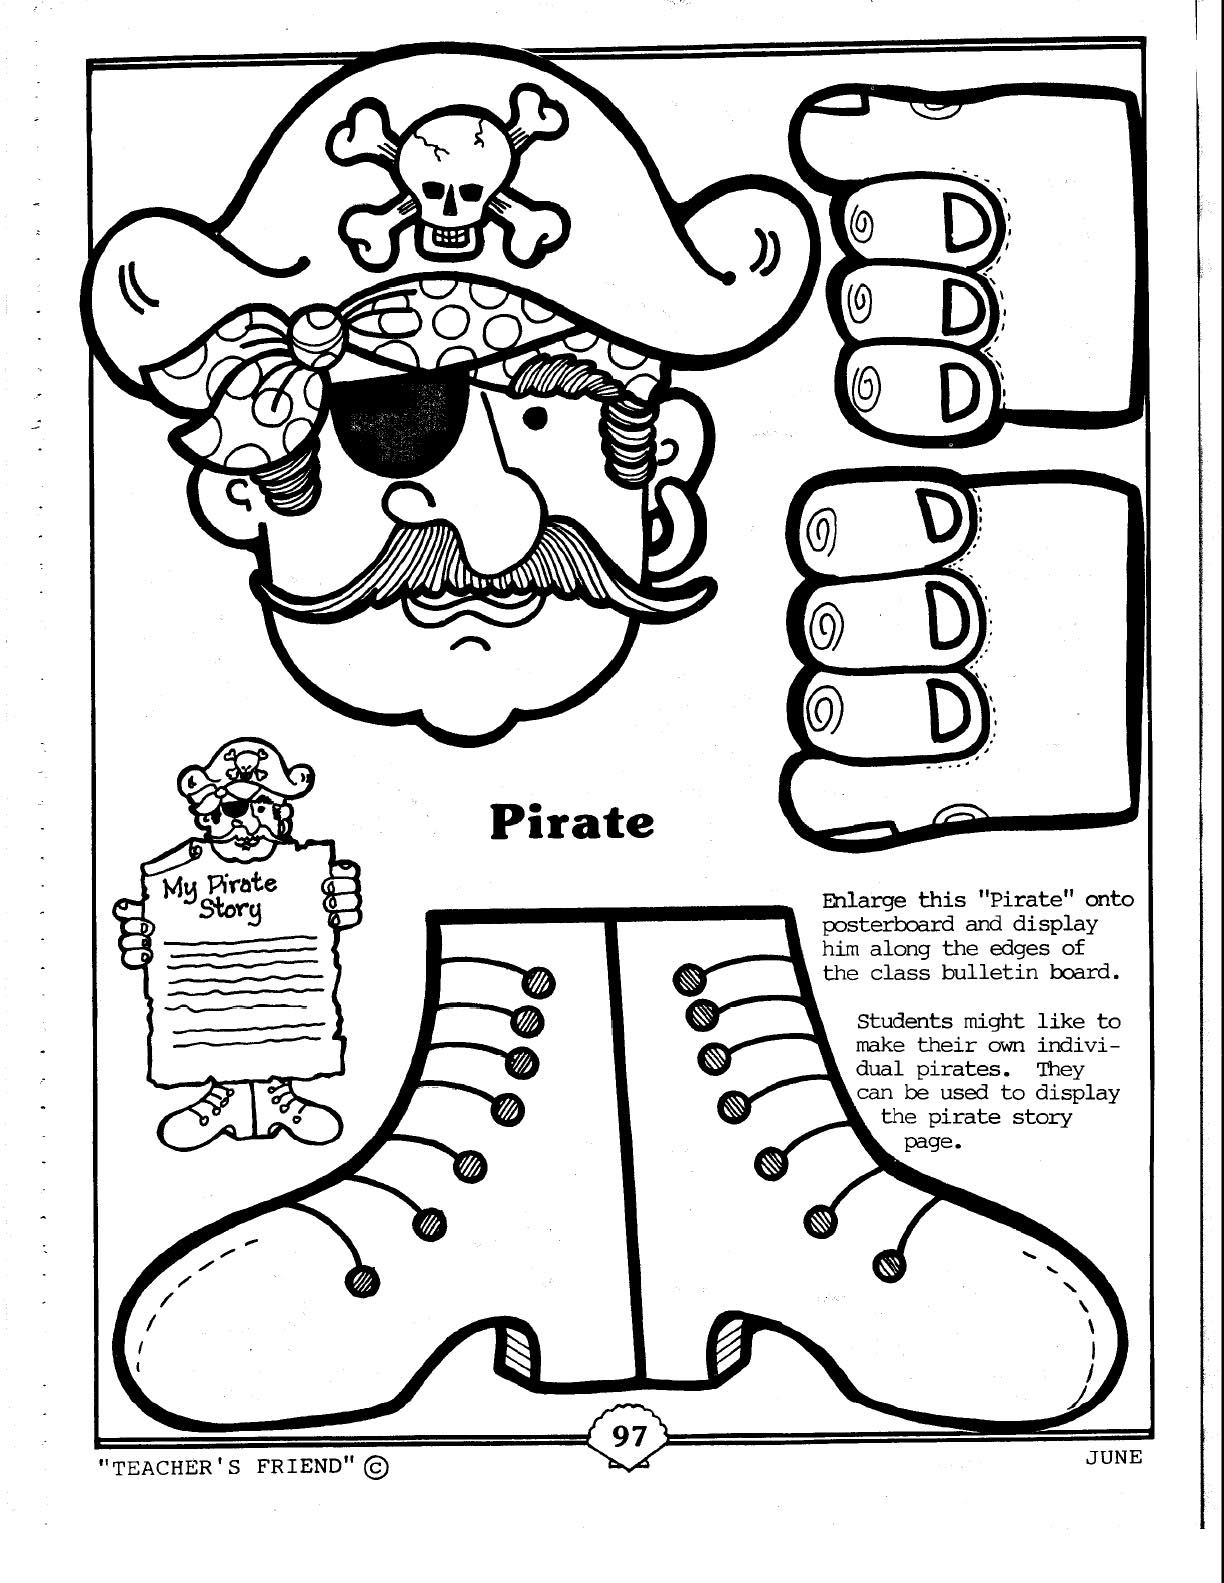 pirate coloring pages for preschool pin by amy whittington on preschool pirates pinterest coloring pages pirate for preschool